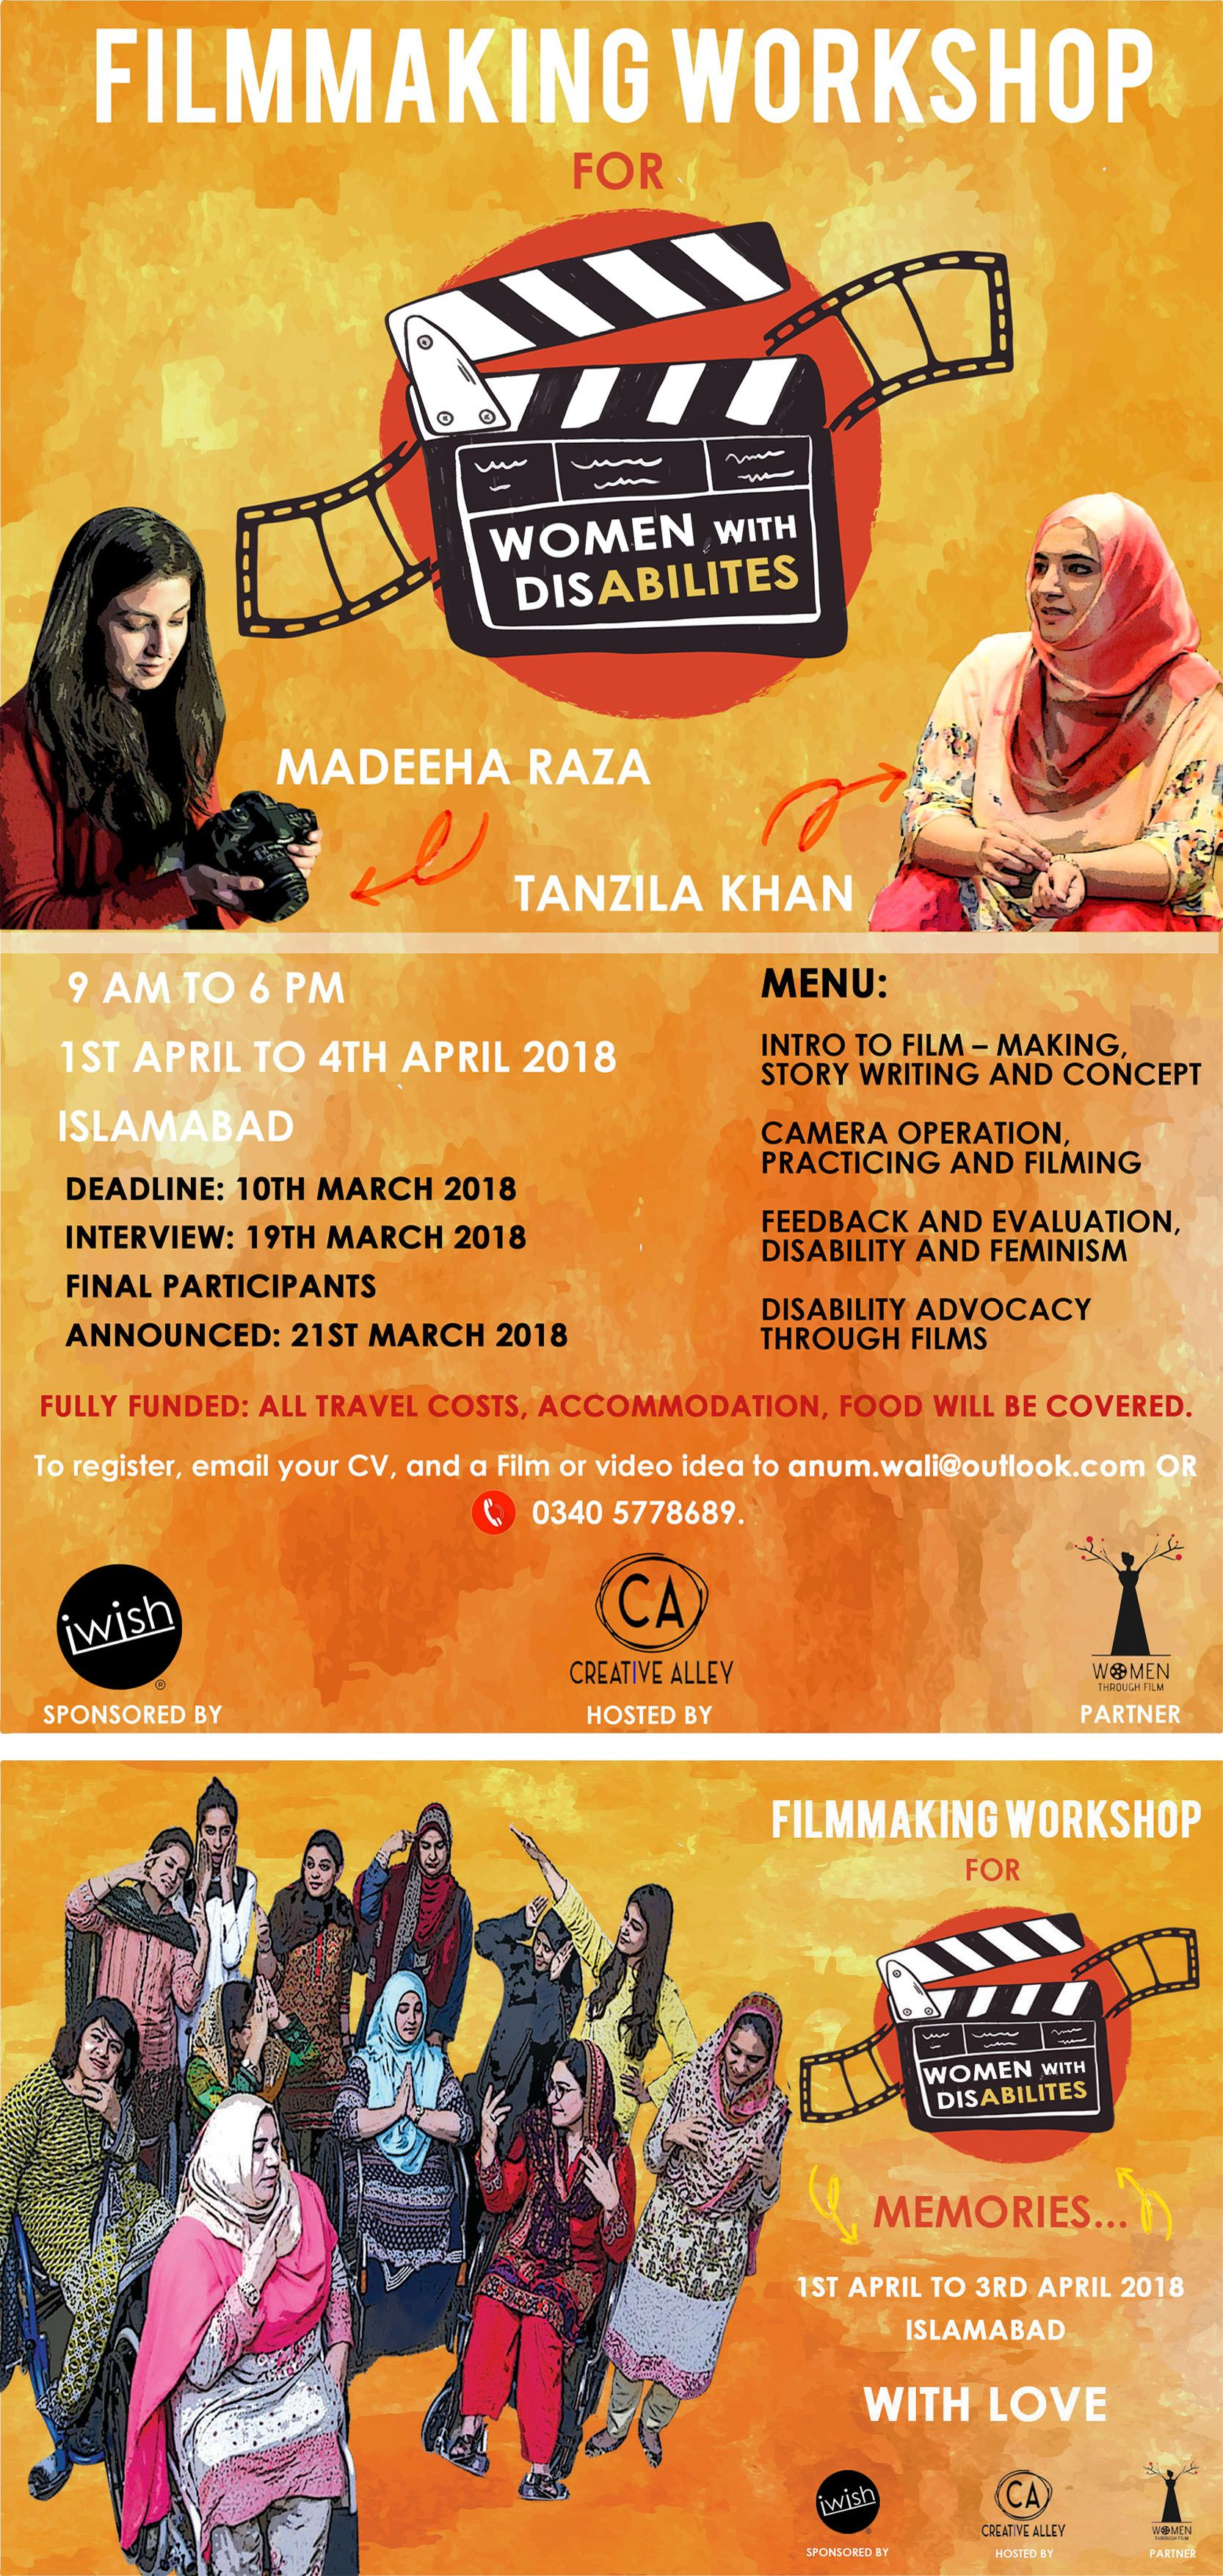 Filmmaking Workshop For Women With Disbabilities Poster Design And